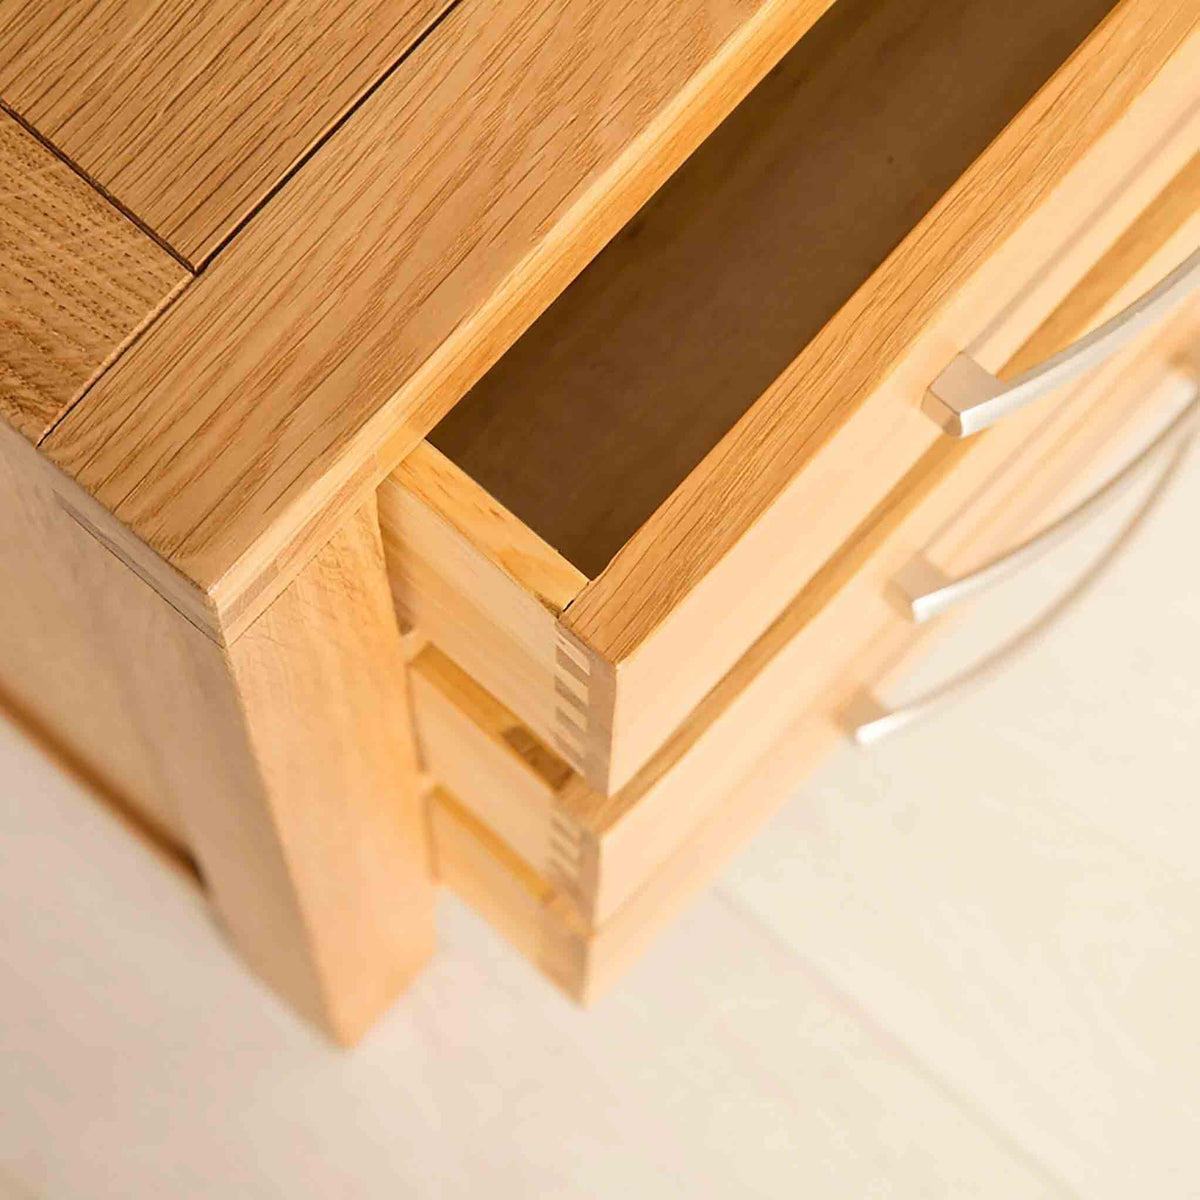 Abbey Light Oak Bedroom Set - Bedside Drawers Looking Down